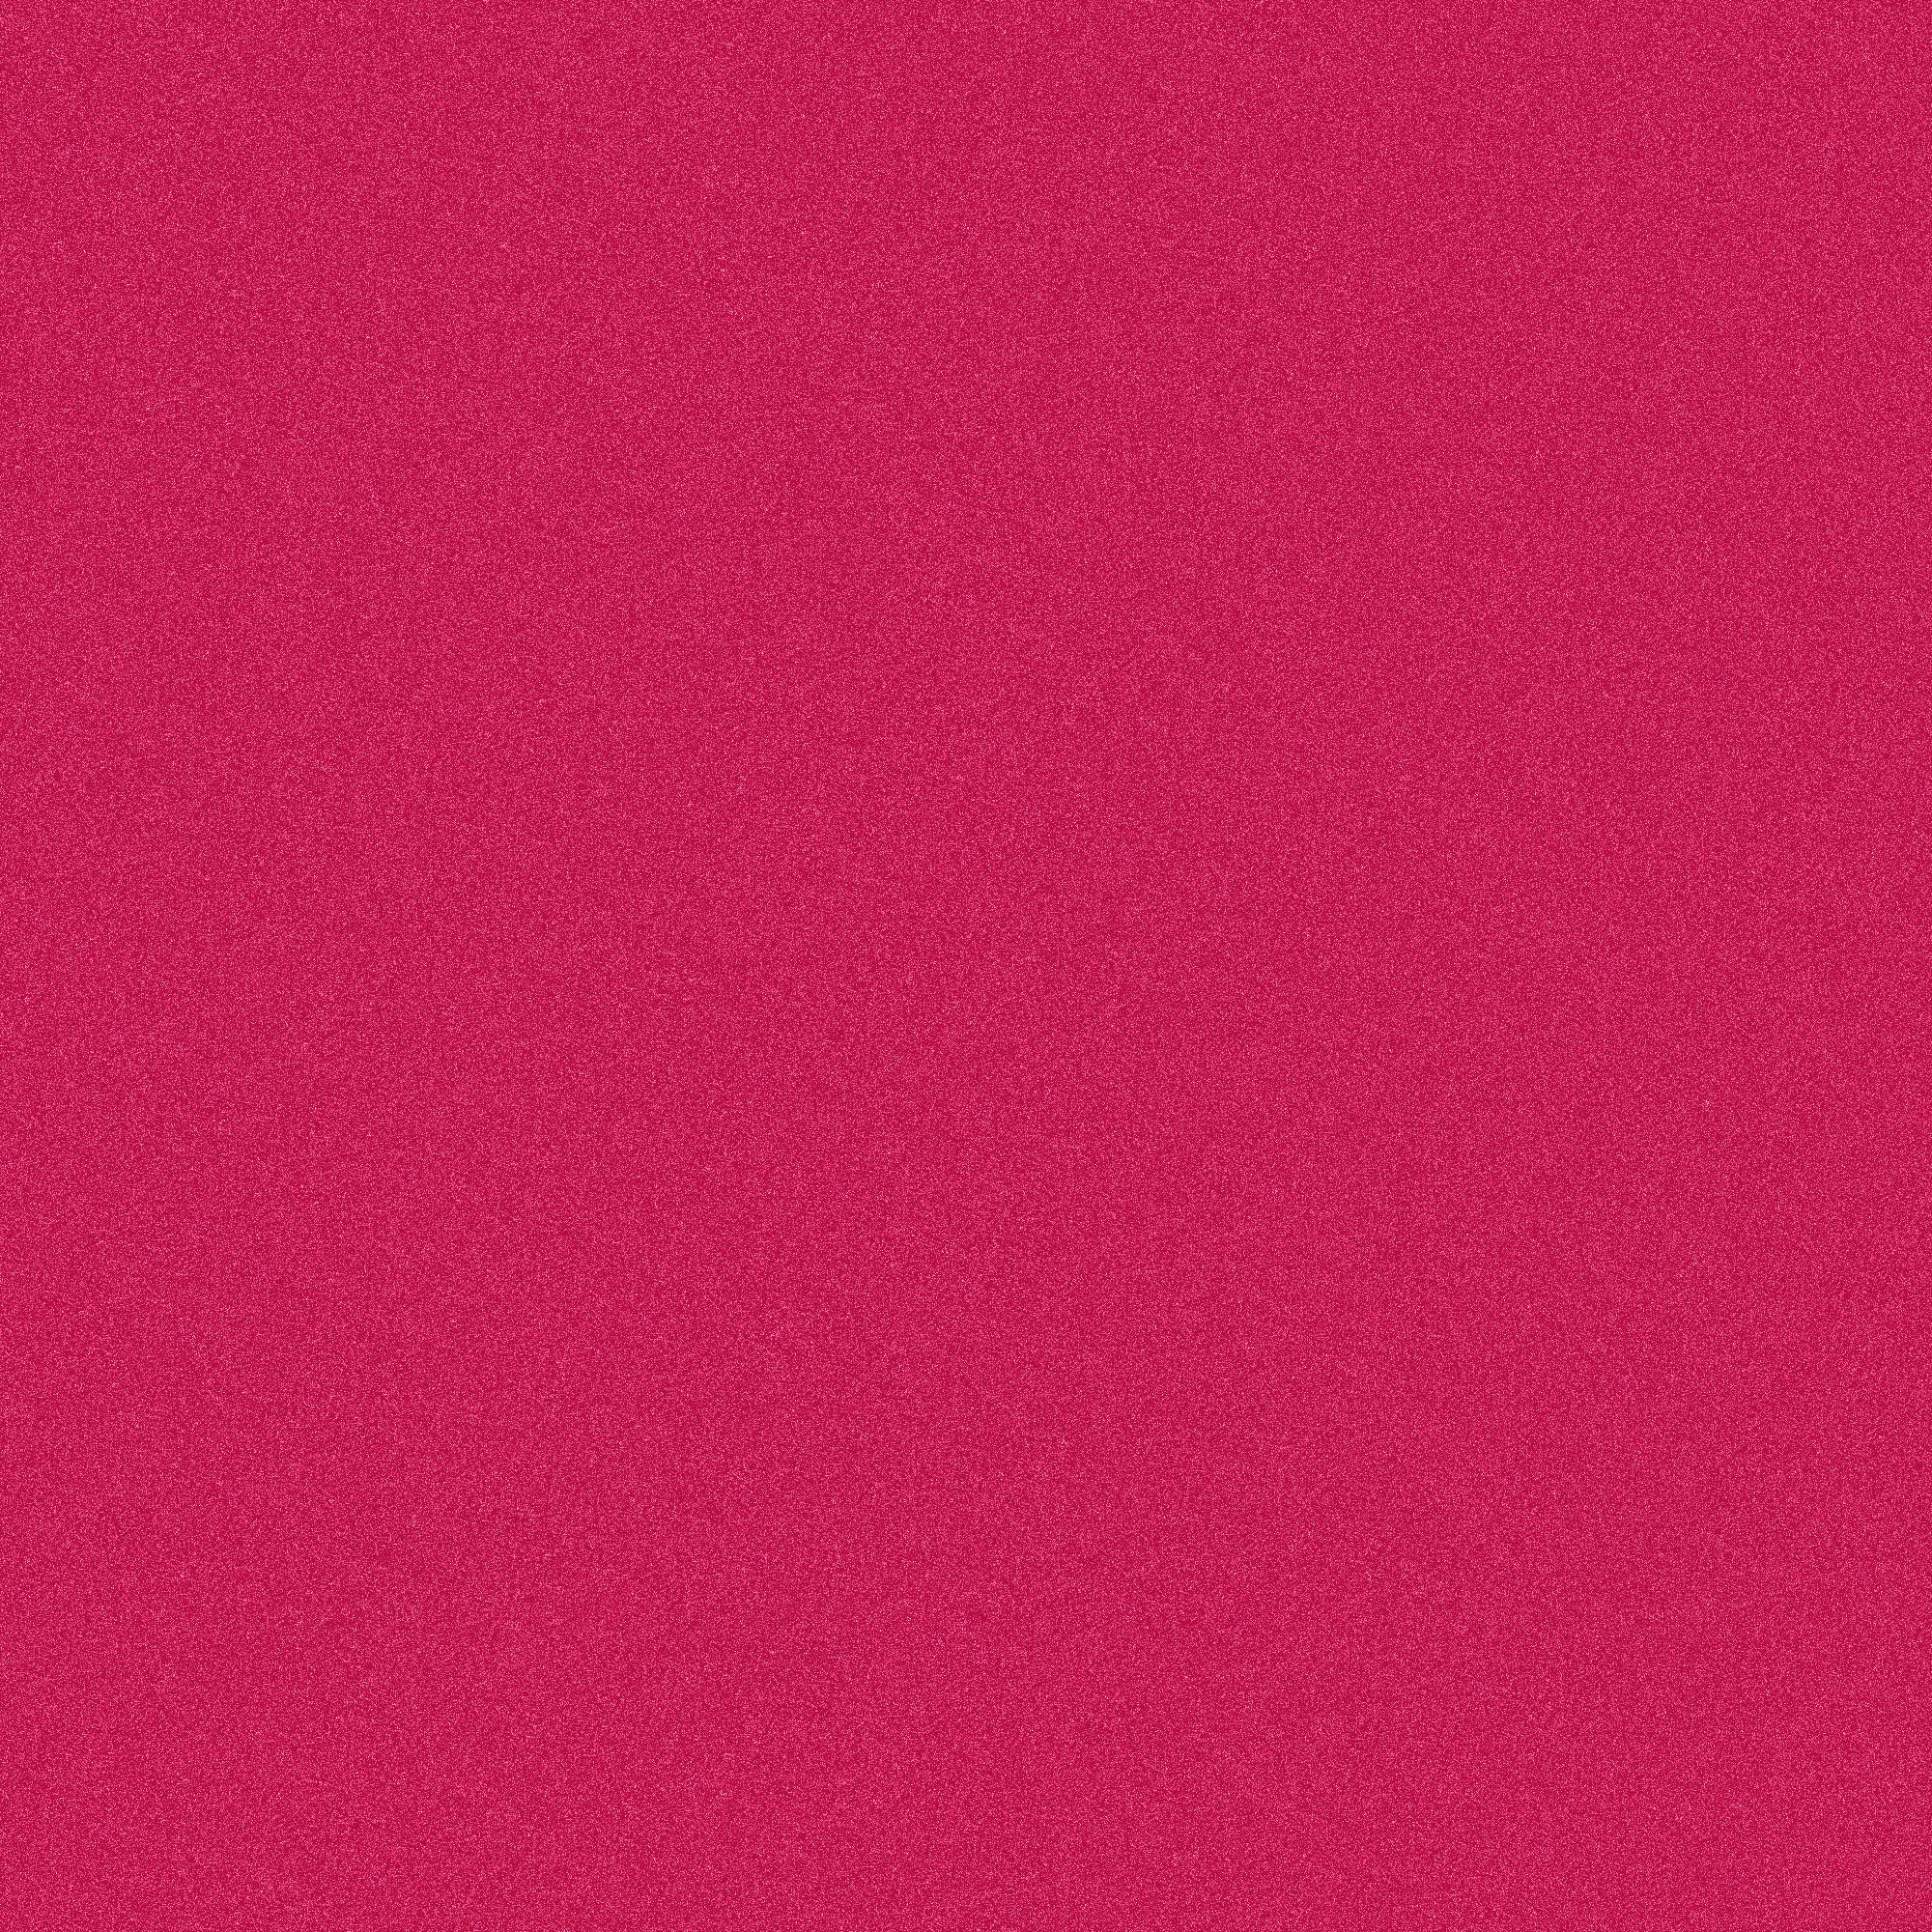 noize_background_pink